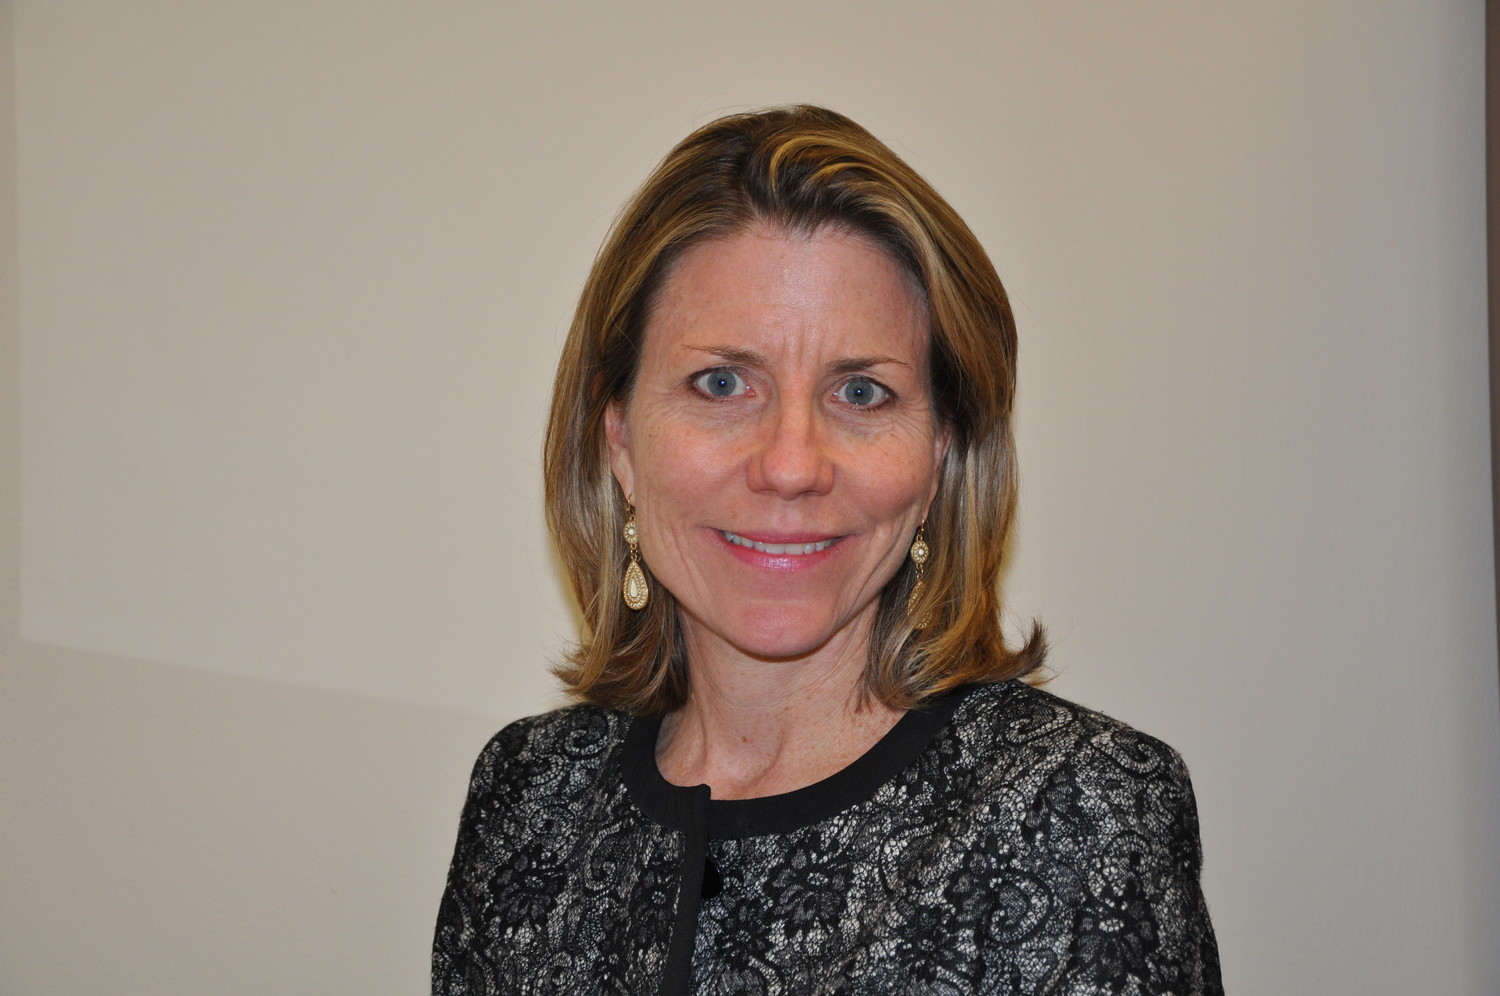 Colleen O'Hara is the new principal of Hewlett Elementary School.